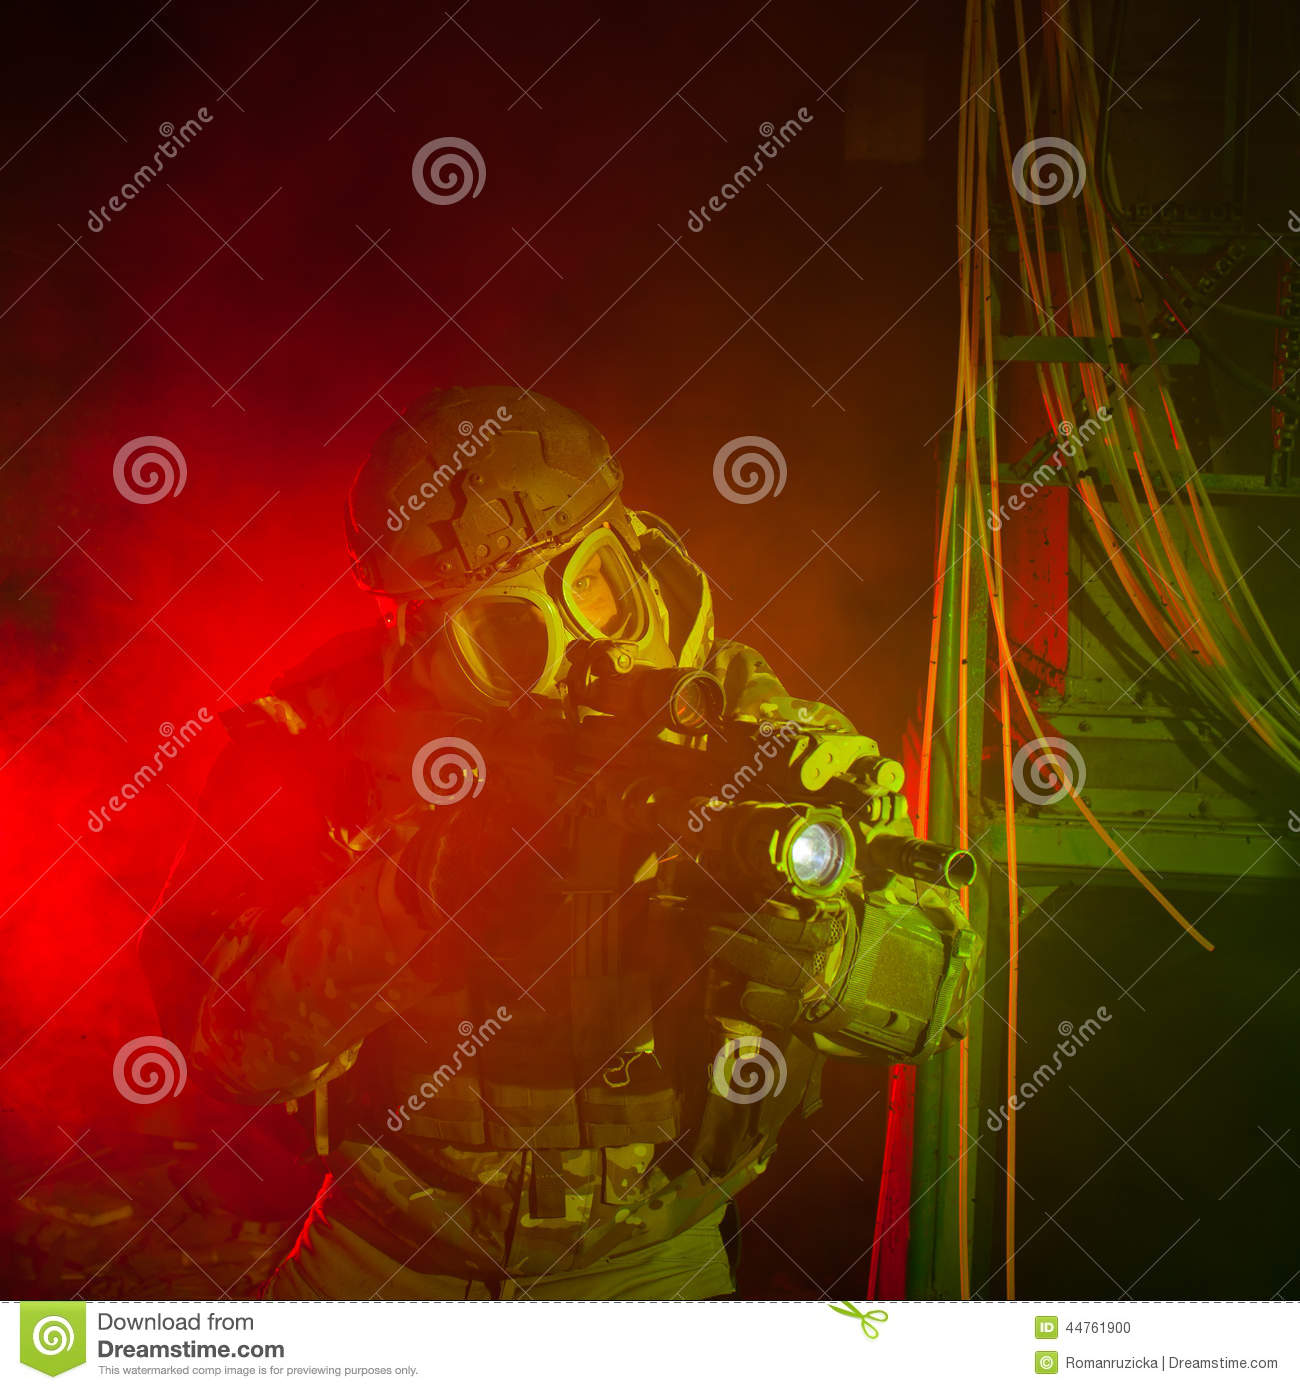 Special forces soldier with gas mask during night mission